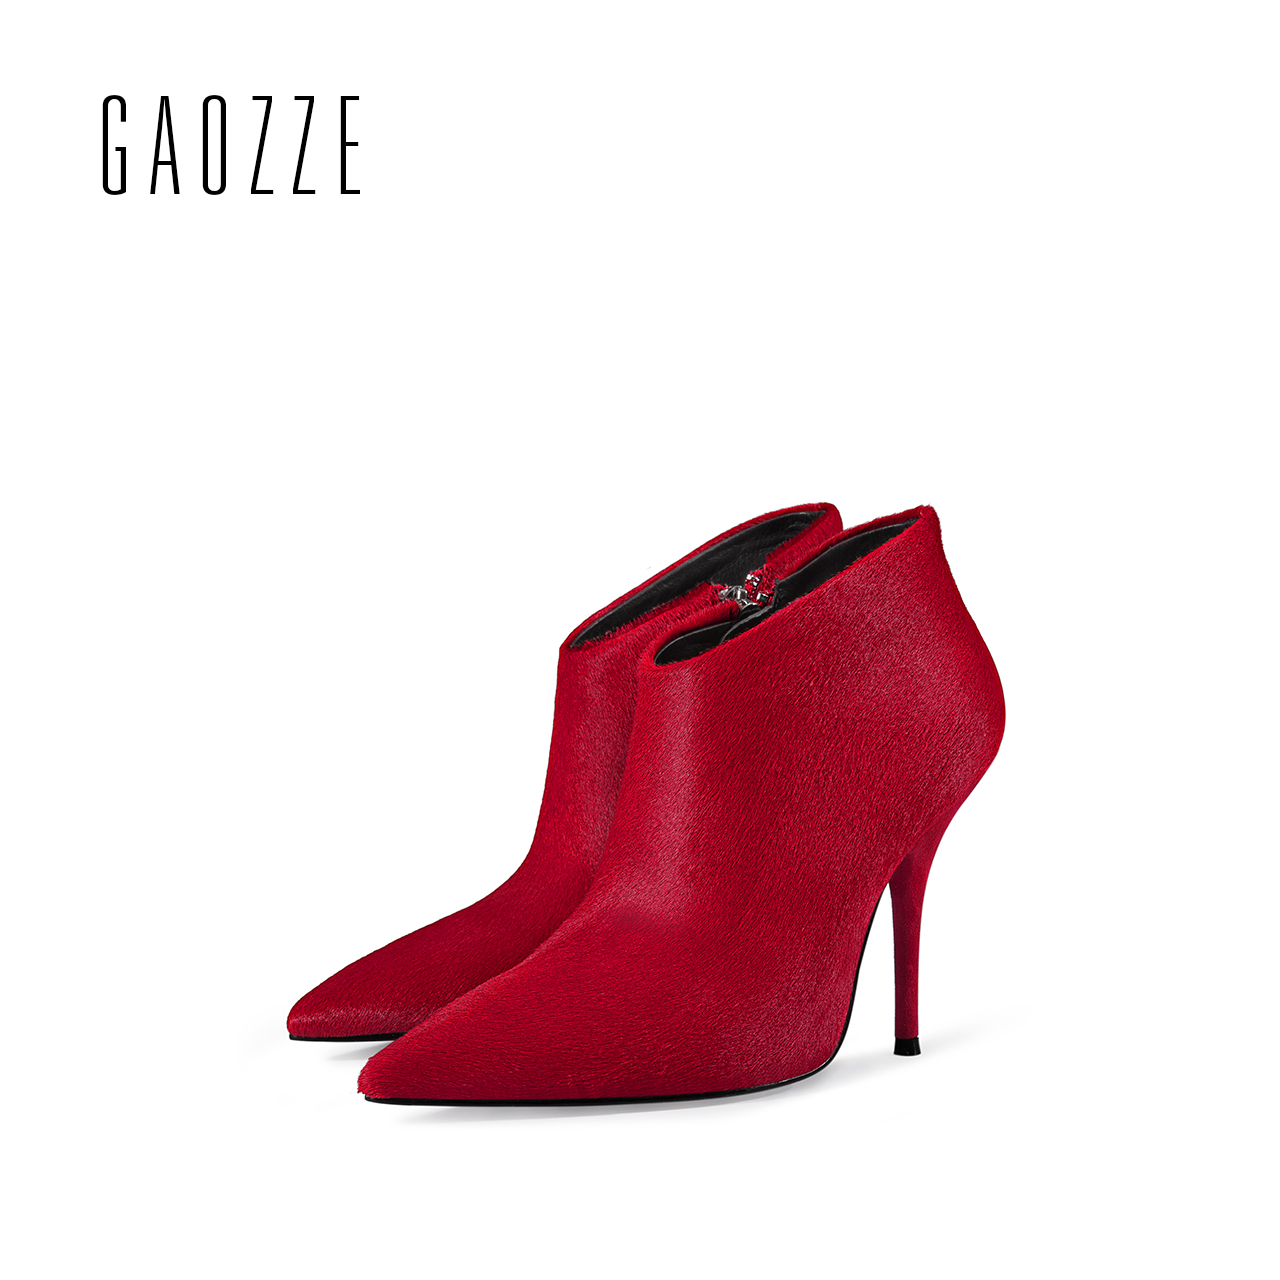 GAOZZE autumn ankle boots for women 2017 new Sexy thin high-heeled boots women side zipper fashion pointed toe shoes red boots intex 29022 59953